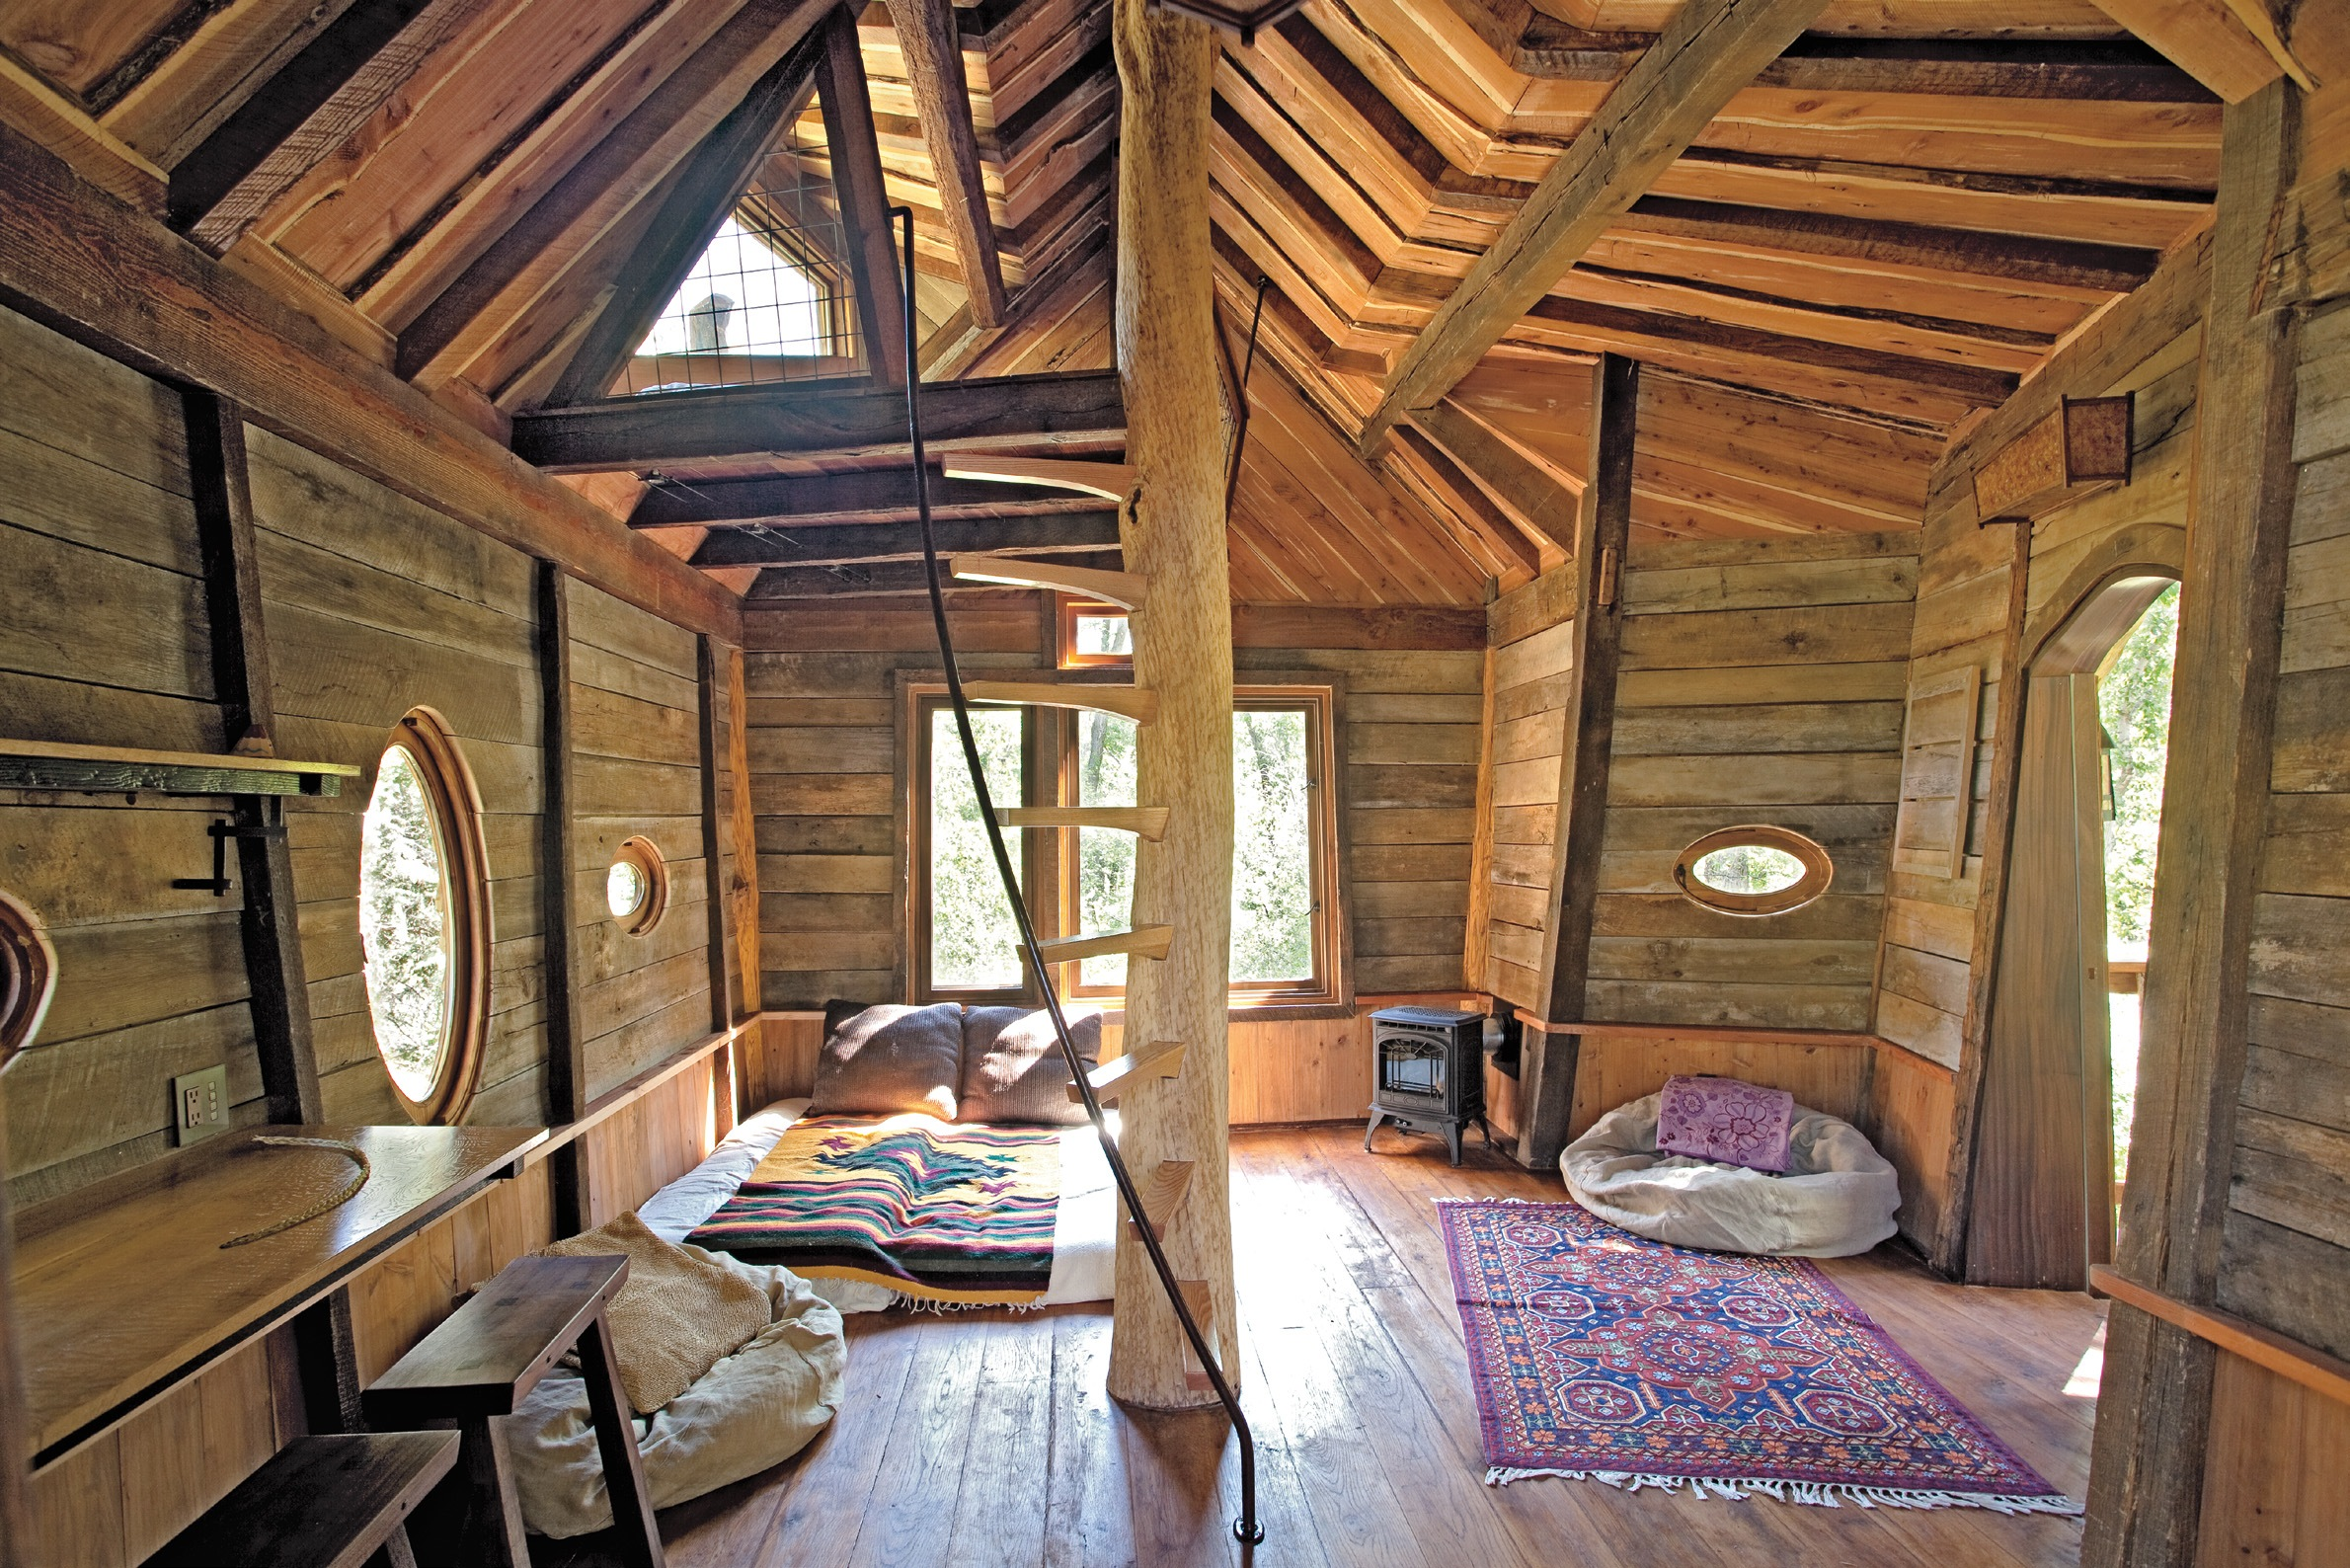 Th 152 153 image for Tiny house interieur